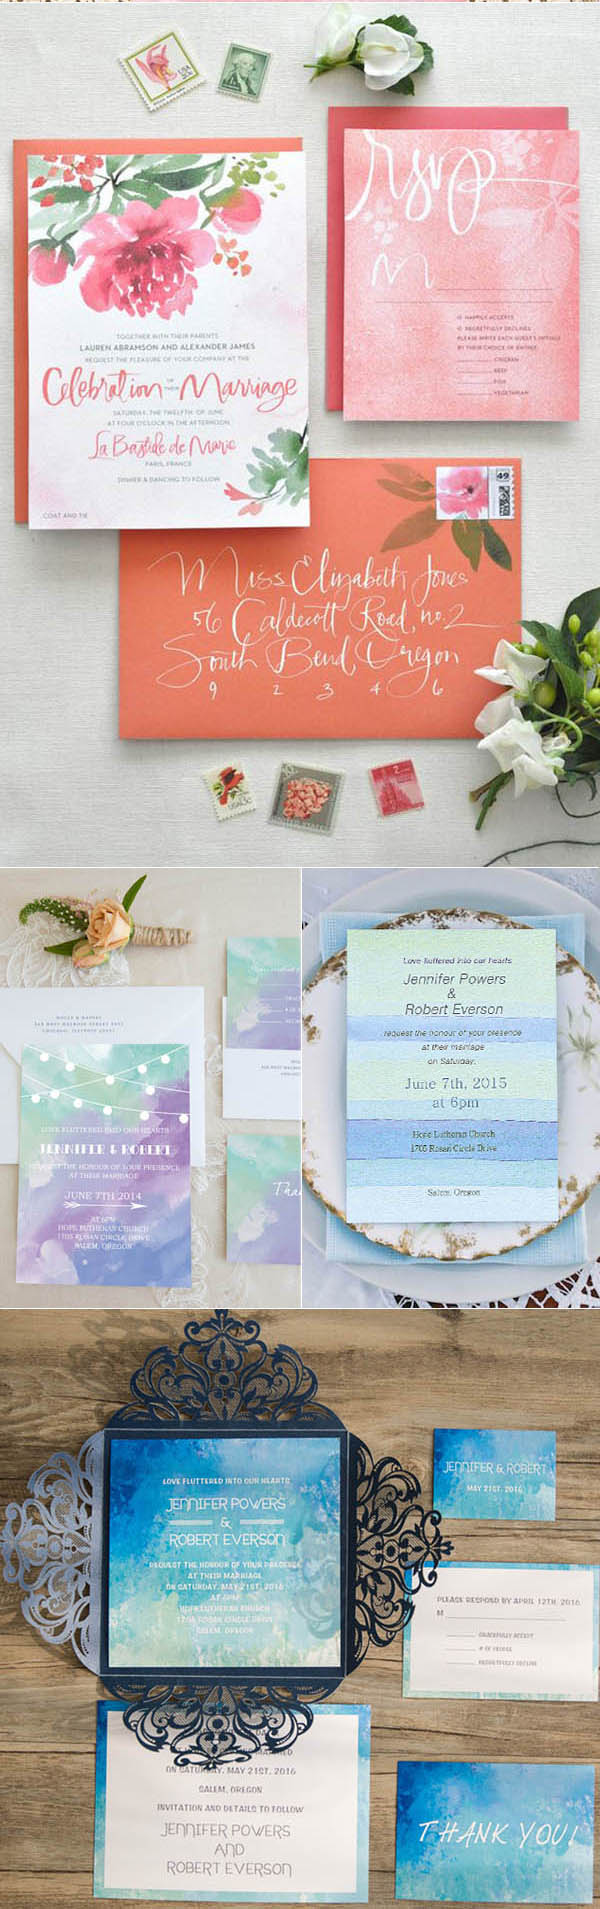 wedding_trends_2017_wedding_invitations_watercolor